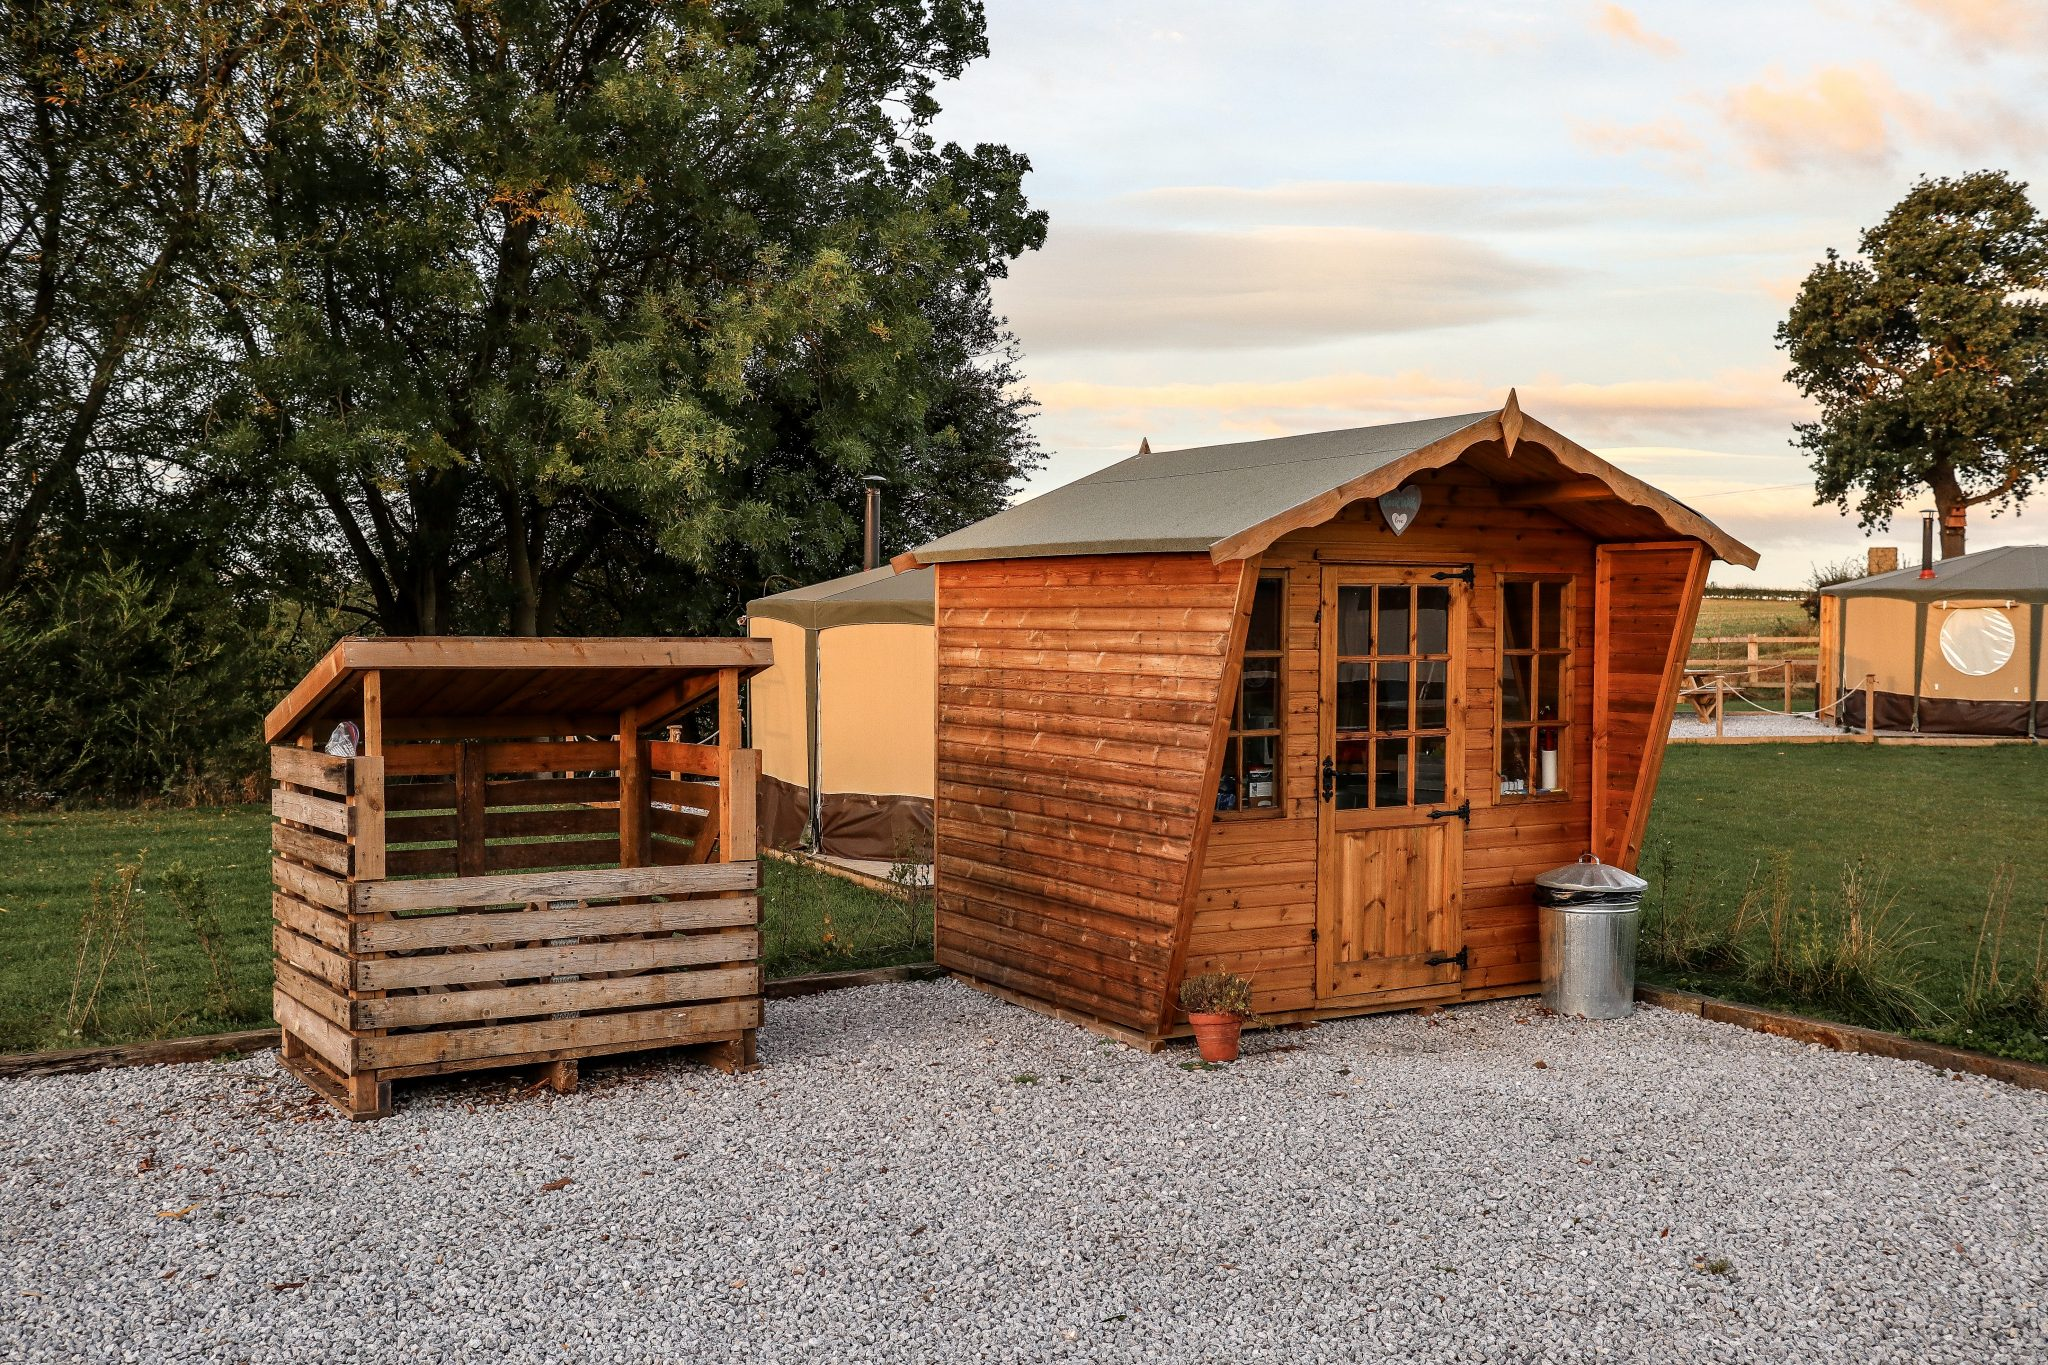 Kitchen Shed at Kingfisher Lakes Glamping Site